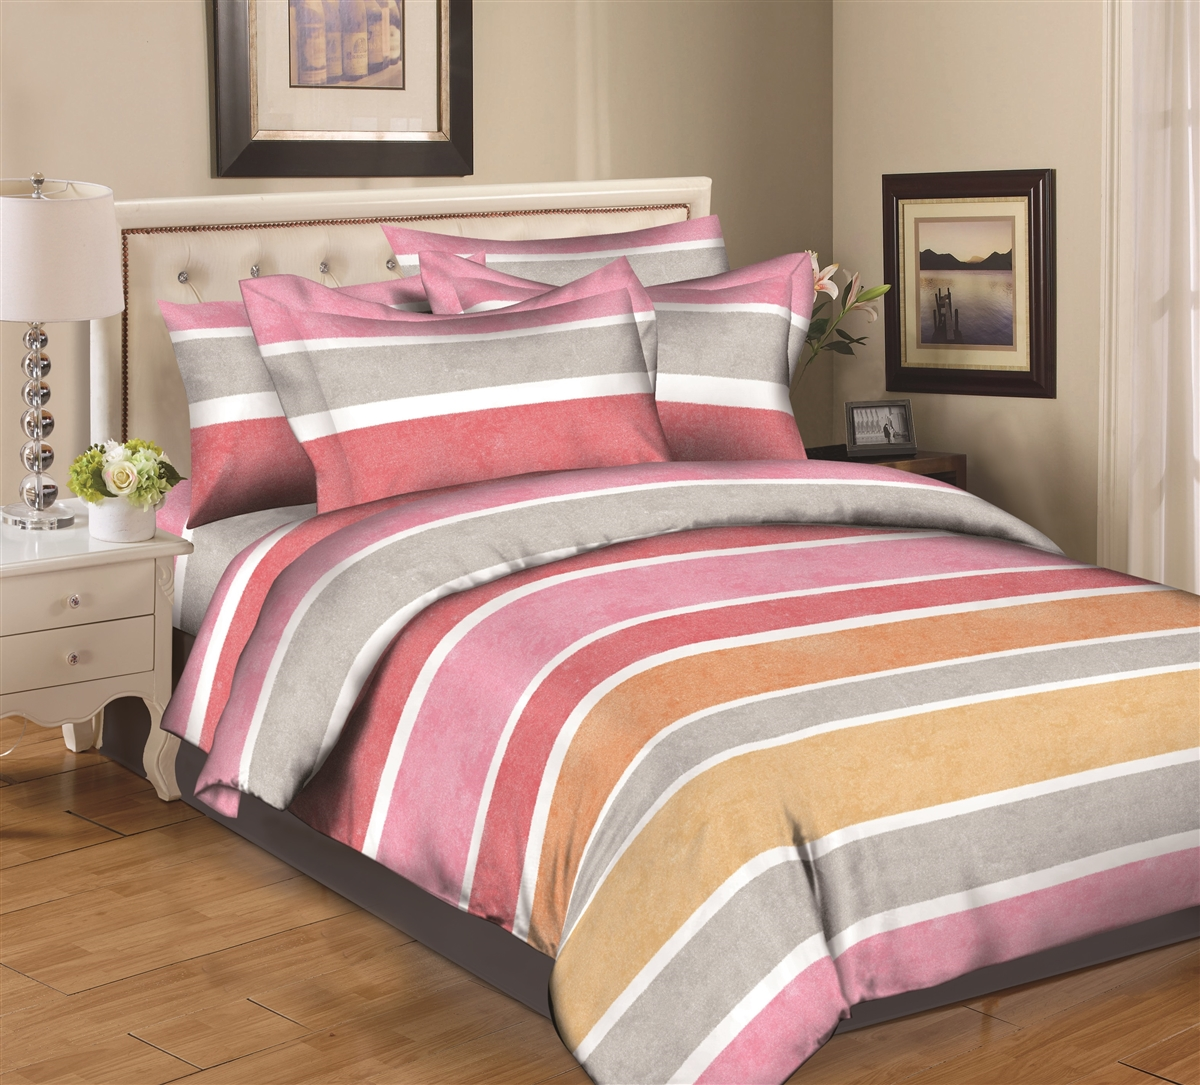 Better Bed Collection: Multi Stripes Pink 8PC Twin Bedding Set